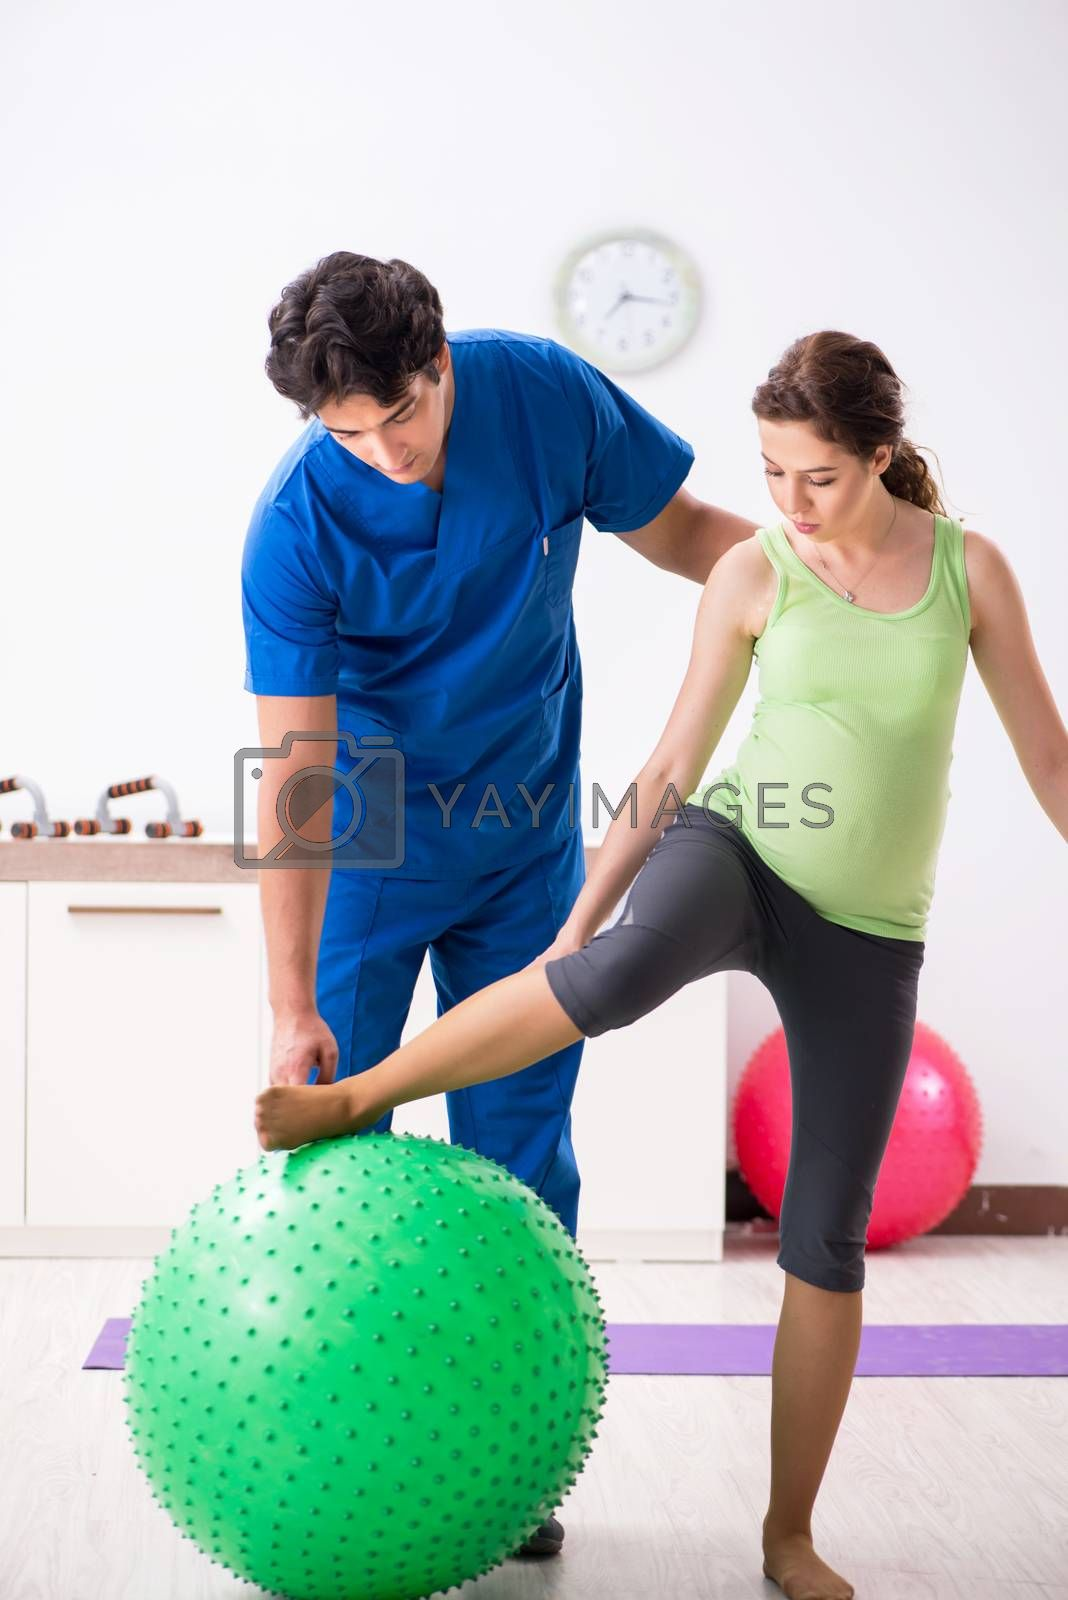 Fitness instructor helping sportsman during exercise